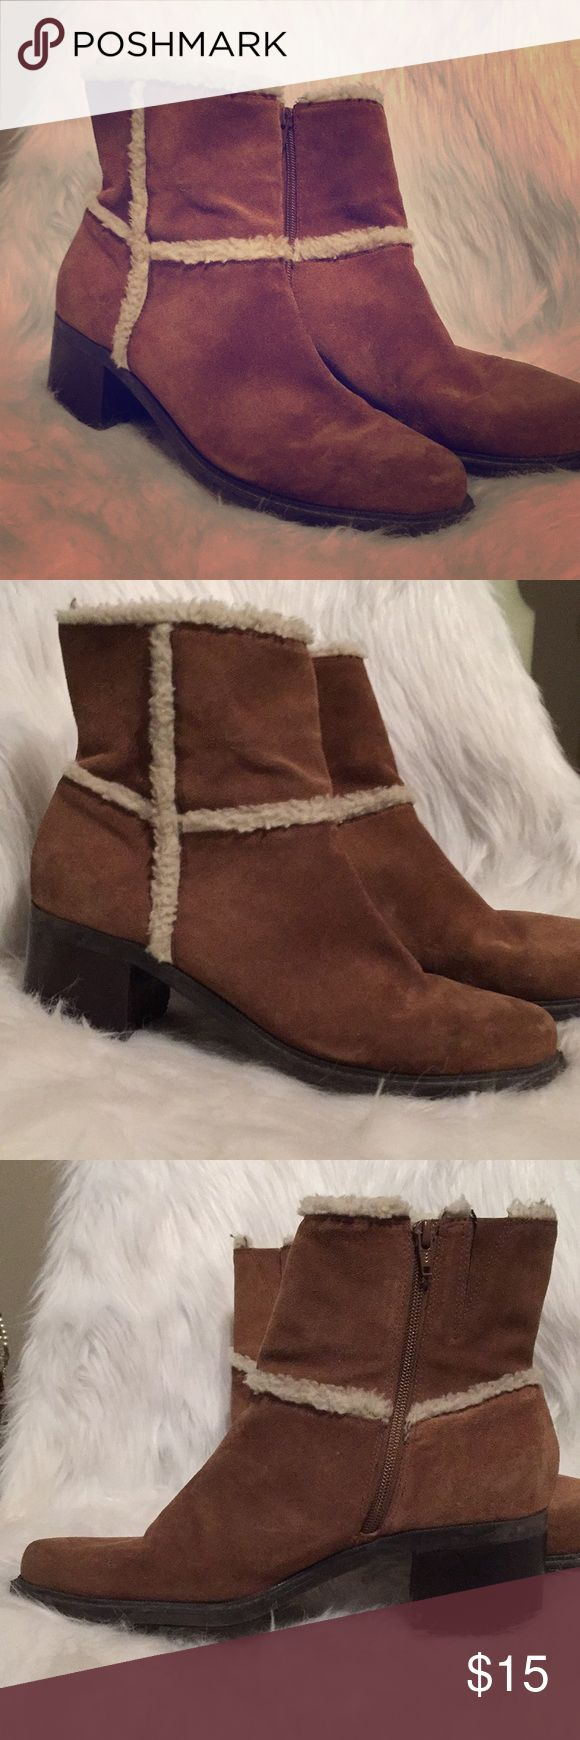 """💖QVC, Markon, 10, fur-trimmed, ankle boot Markon """"Donald"""", 10, fur-trimmed ankle boots, comfortable, sturdy, and on trend. These boots look great with jeans 👖 where you don't see the fur or wear them with leggings, jeggings, skinny jeans/pants or even a dress or skirt. They are truly versatile. Hand-written # on sole is the QVC product number, unsure sure why it is there. QVC no longer sells them. Only flaw see pics, both block heels have tiny part of the corner lifted. My opinion is it is…"""